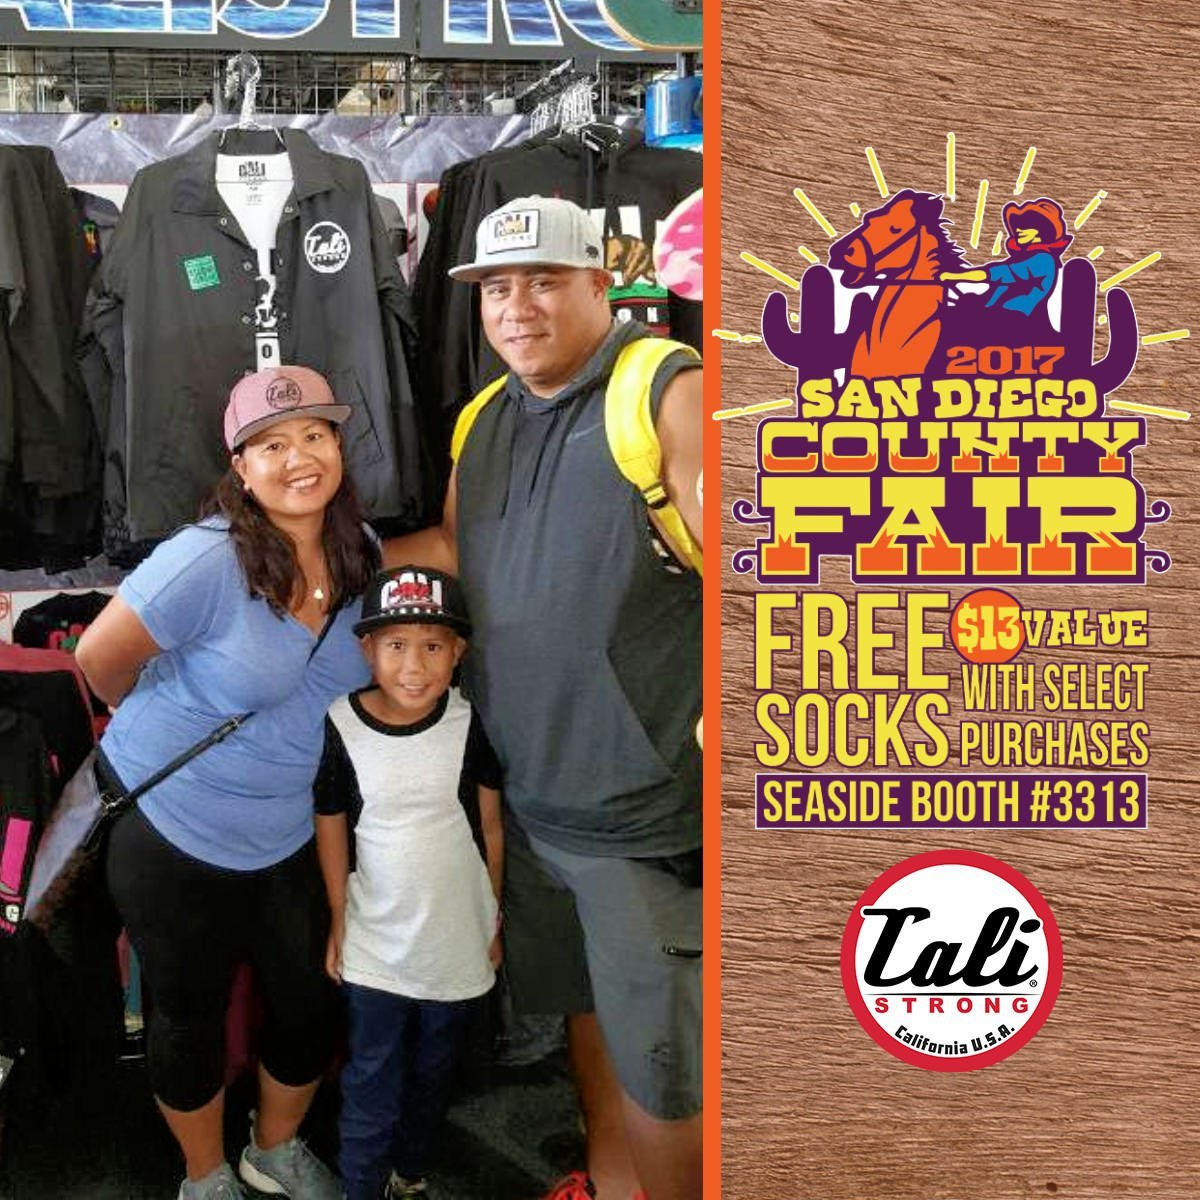 The family that wears hats together, stays together at the San Diego County Fair Seaside Tent Booth 3313!